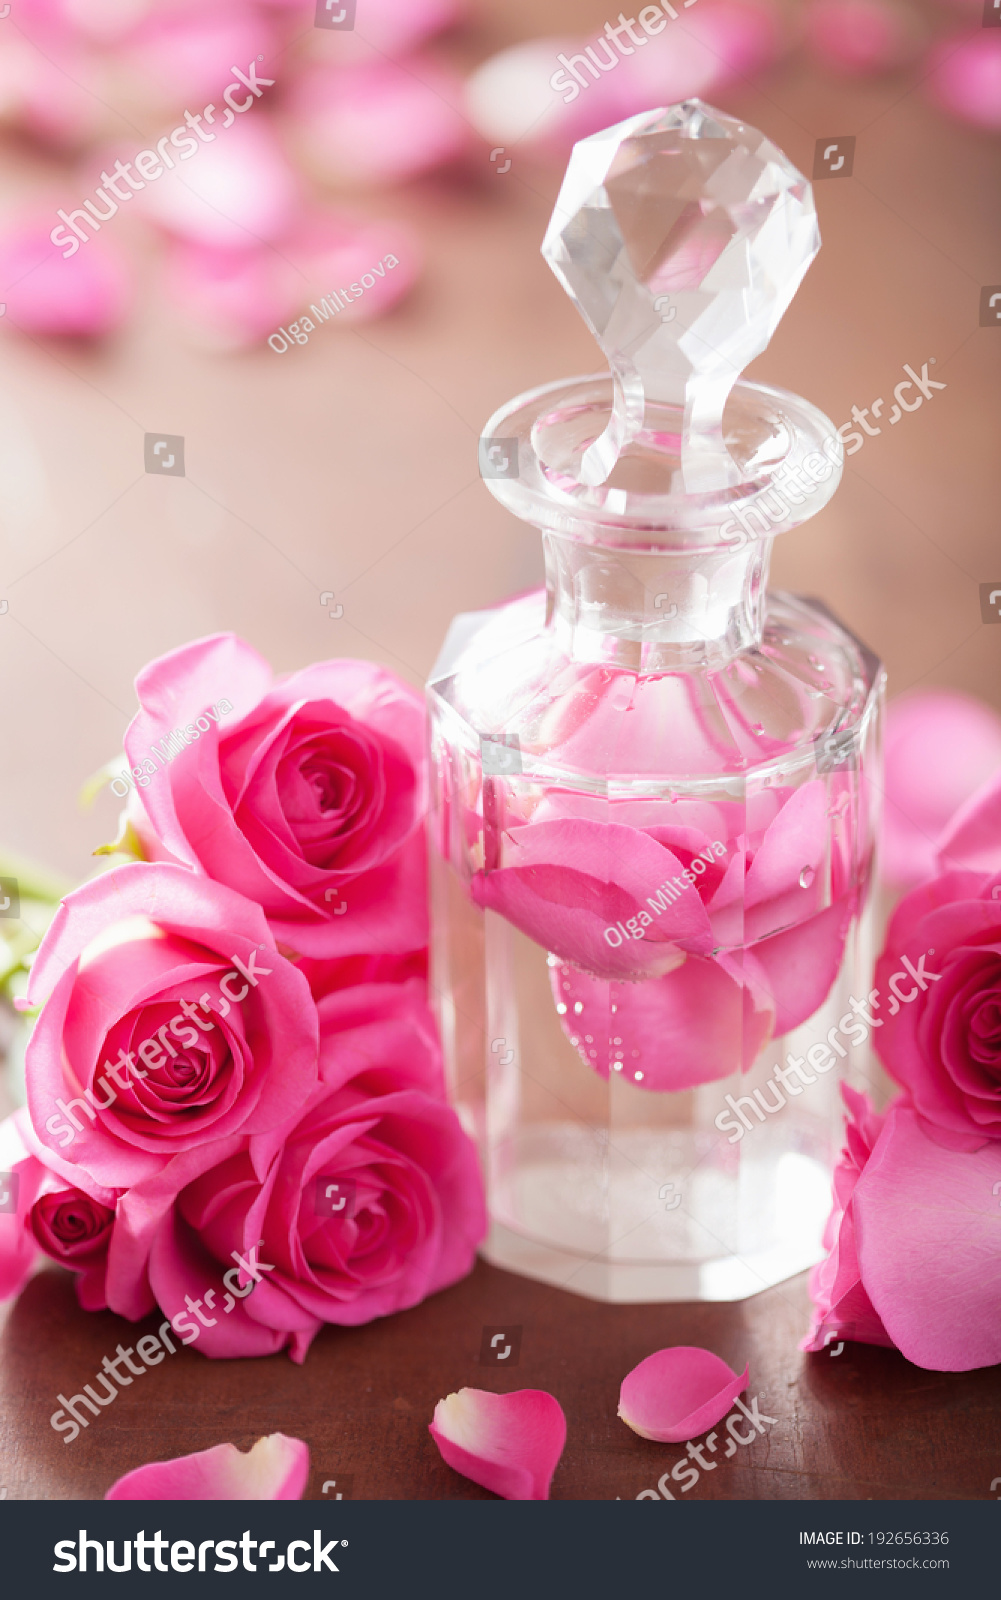 Perfume Bottle And Pink Rose Flowers Spa Aromatherapy Ez Canvas